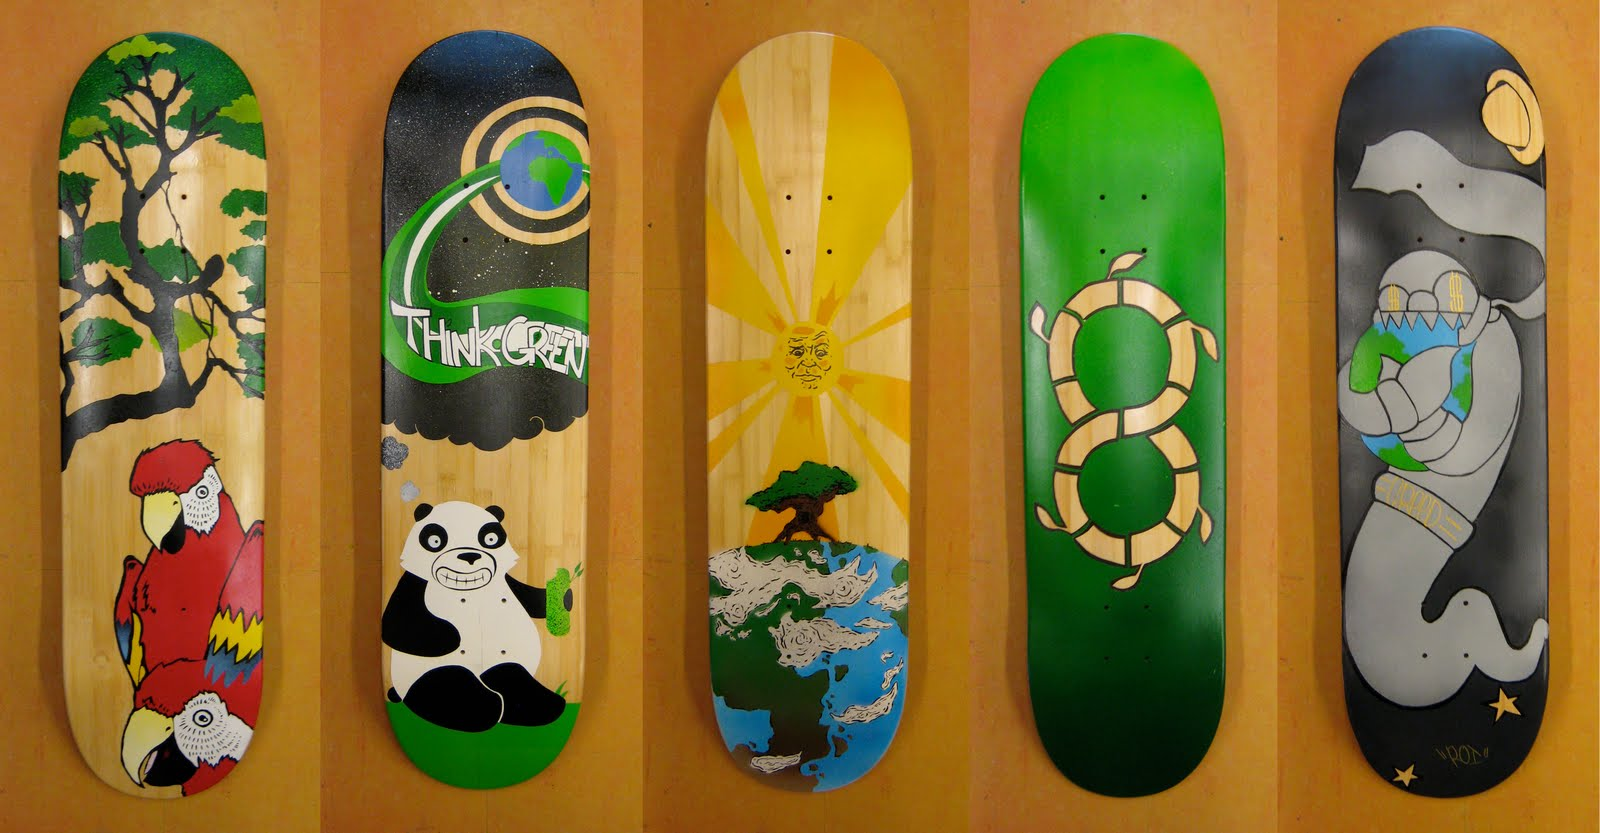 223448d18 OASIS SKATEBOARD FACTORY: OSF x Bamboo SK8 Graphic Design Contest ...